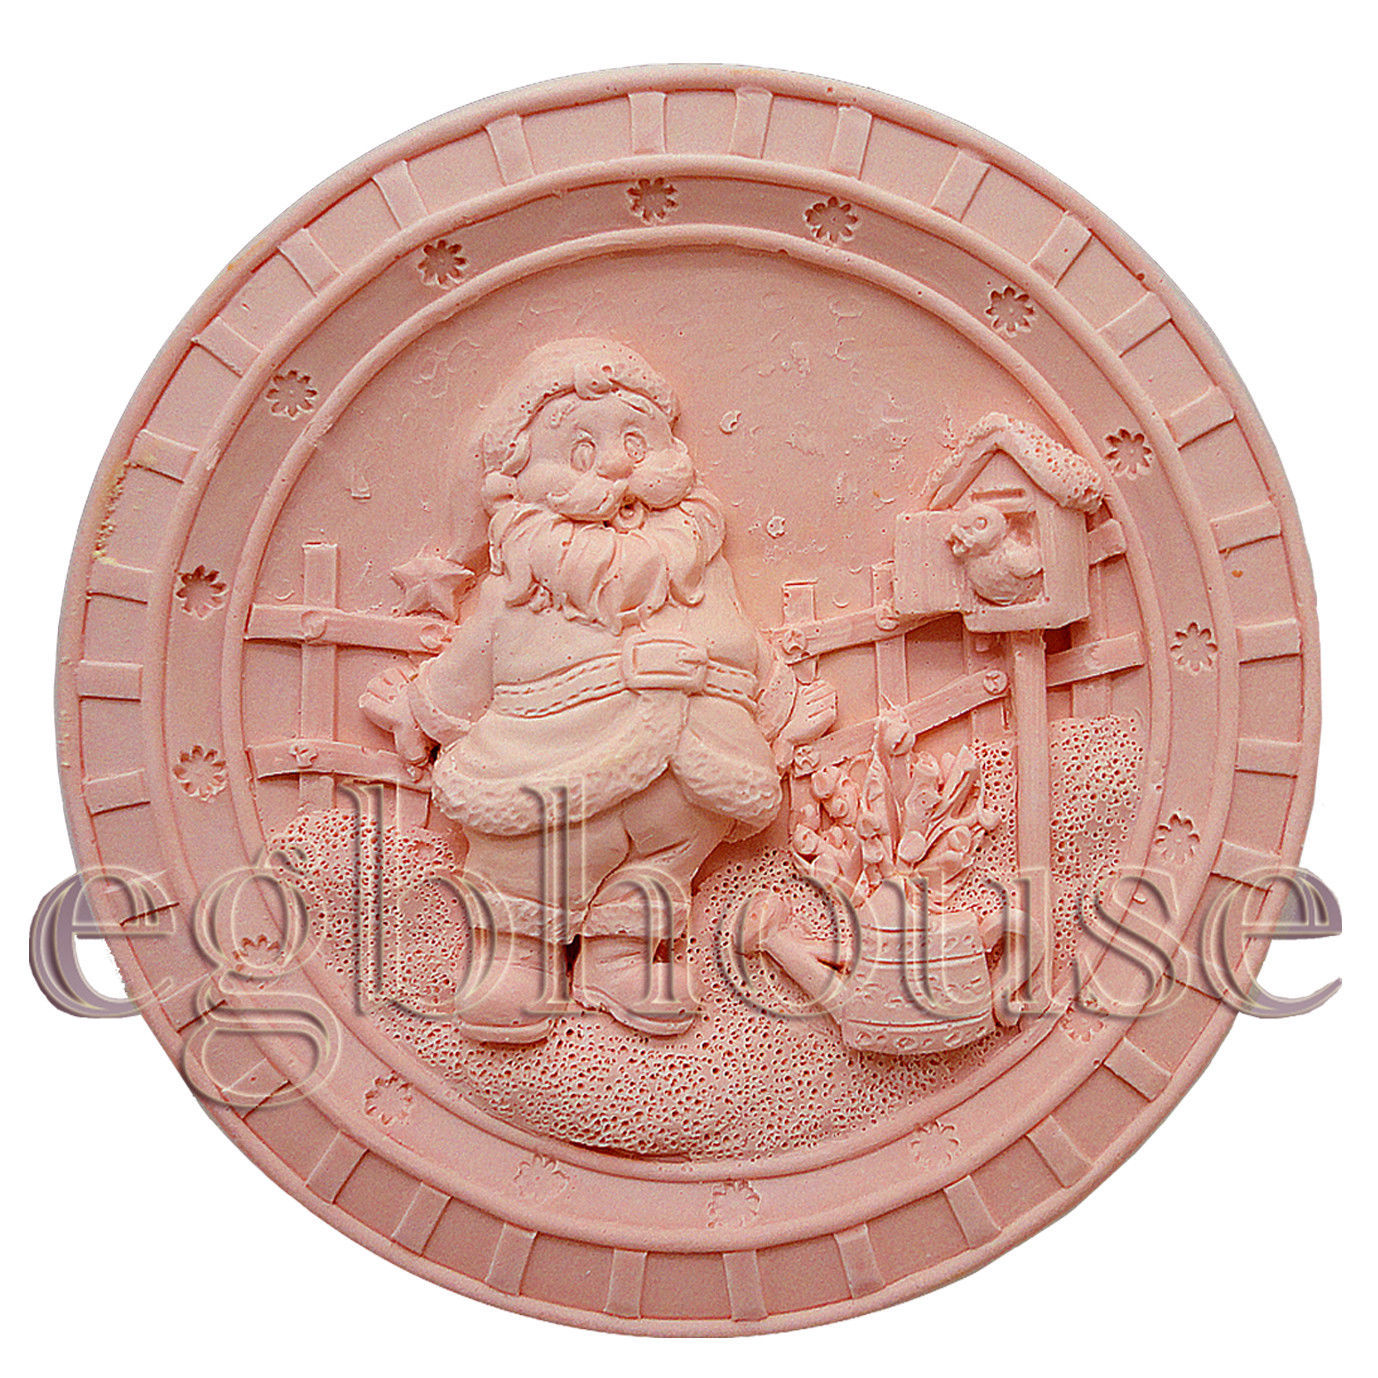 Mermaid Wendy with Fish Detail of high relief sculpture Silicone Soap Mold